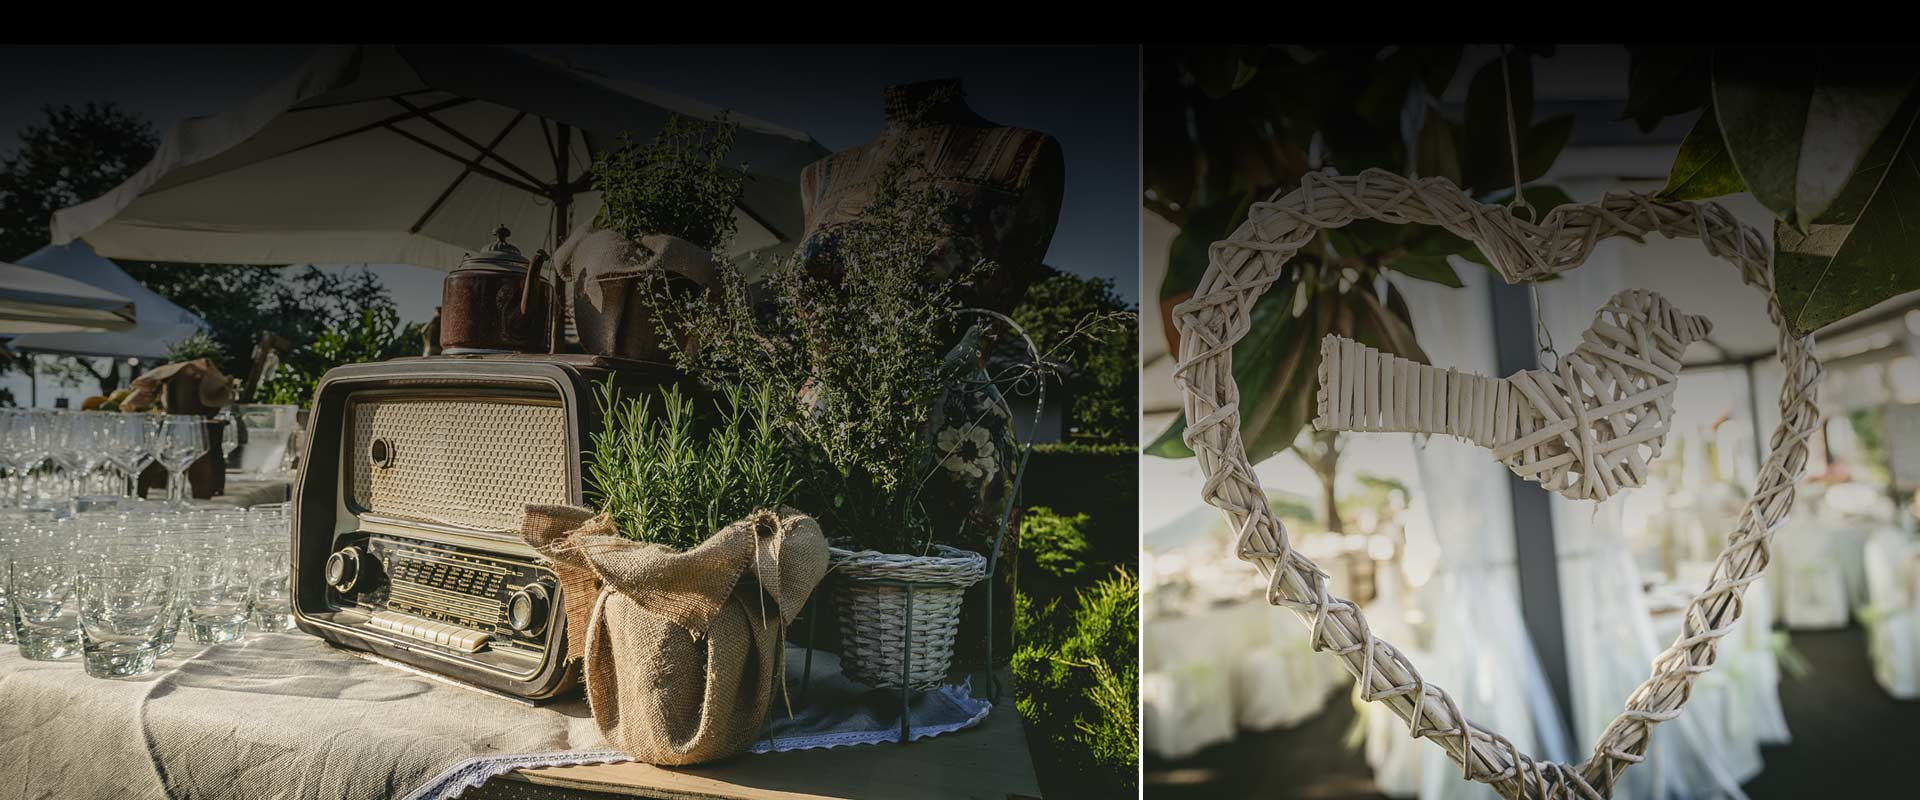 Matrimonio Country Chic Significato : Matrimonio country chic i giardini di ararat